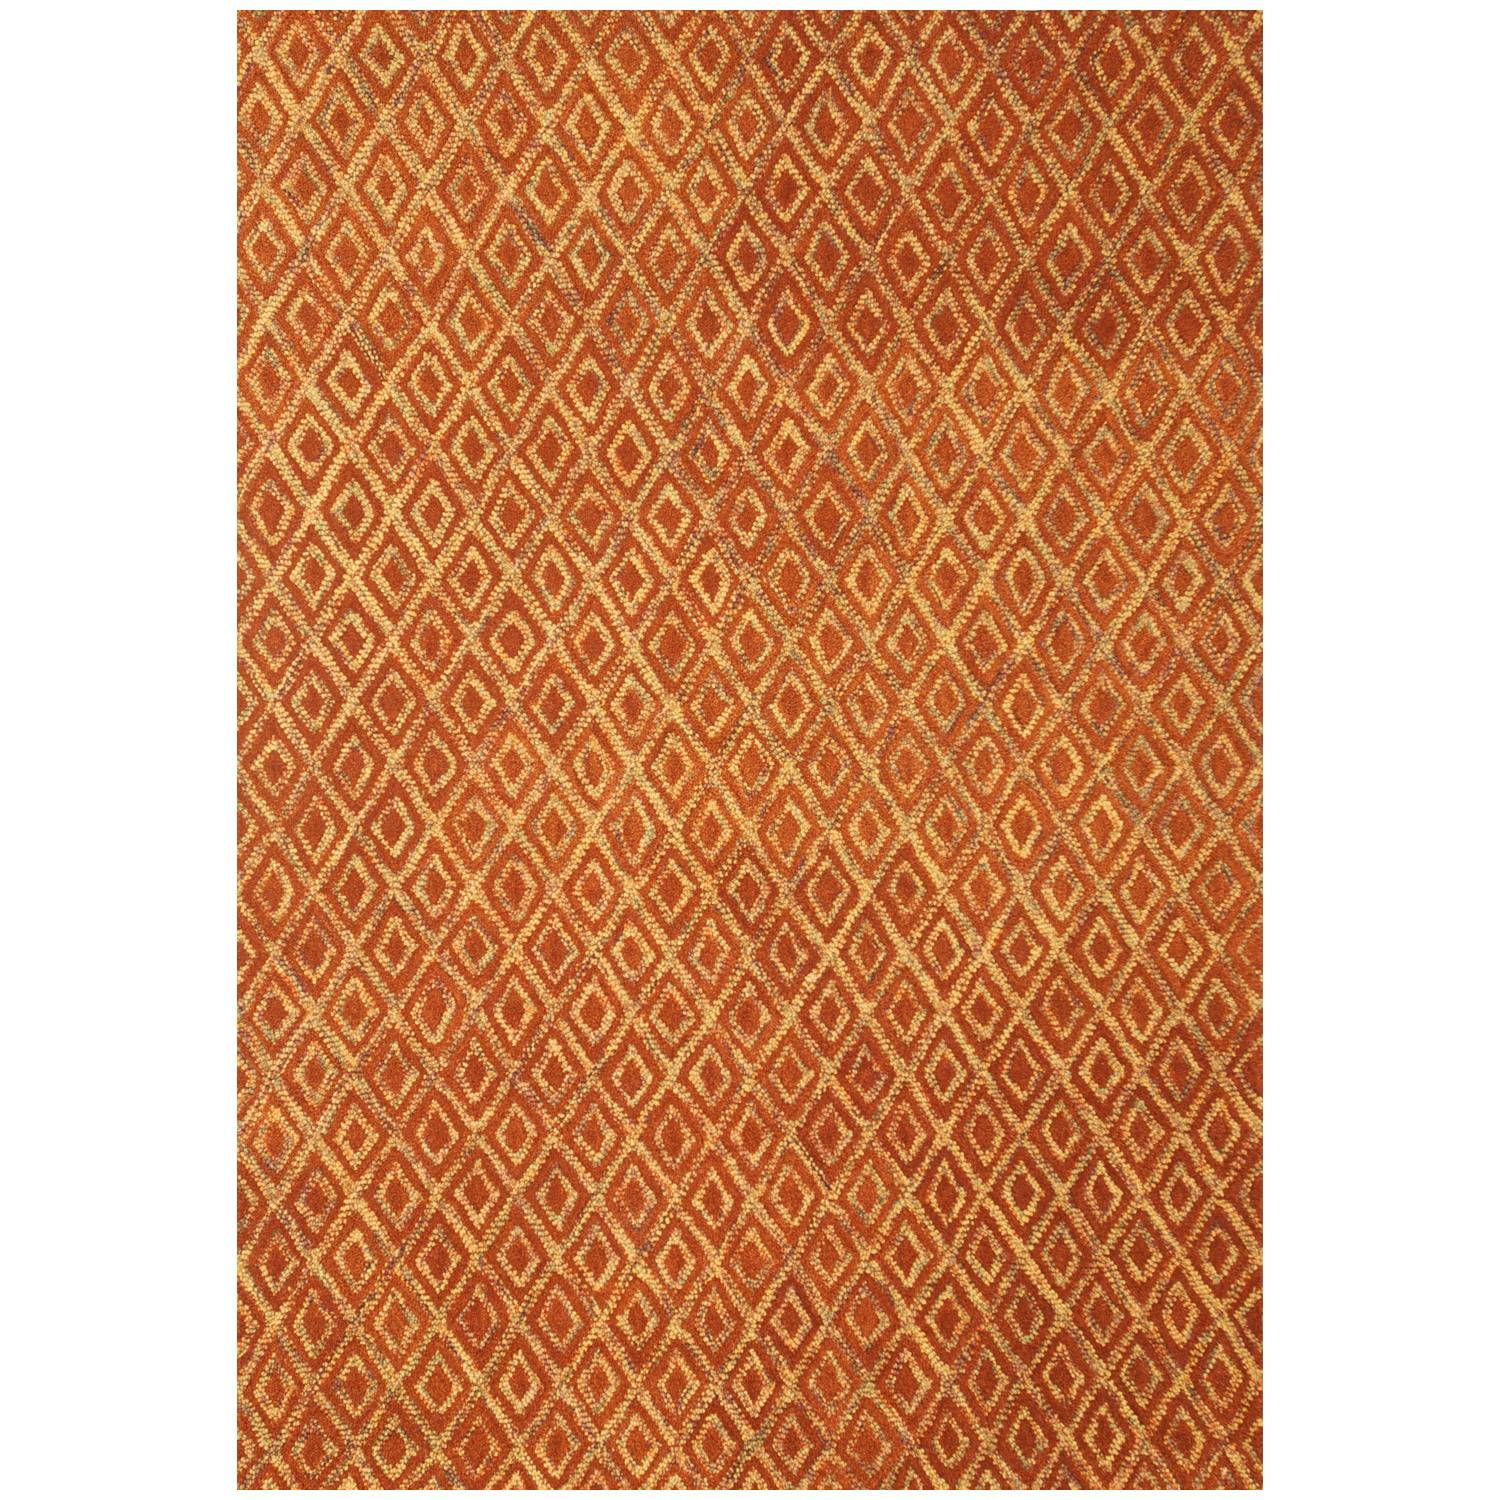 Lifestyle Tennille Rug - Hand Tufted, Wool - ABA-9822-5x8